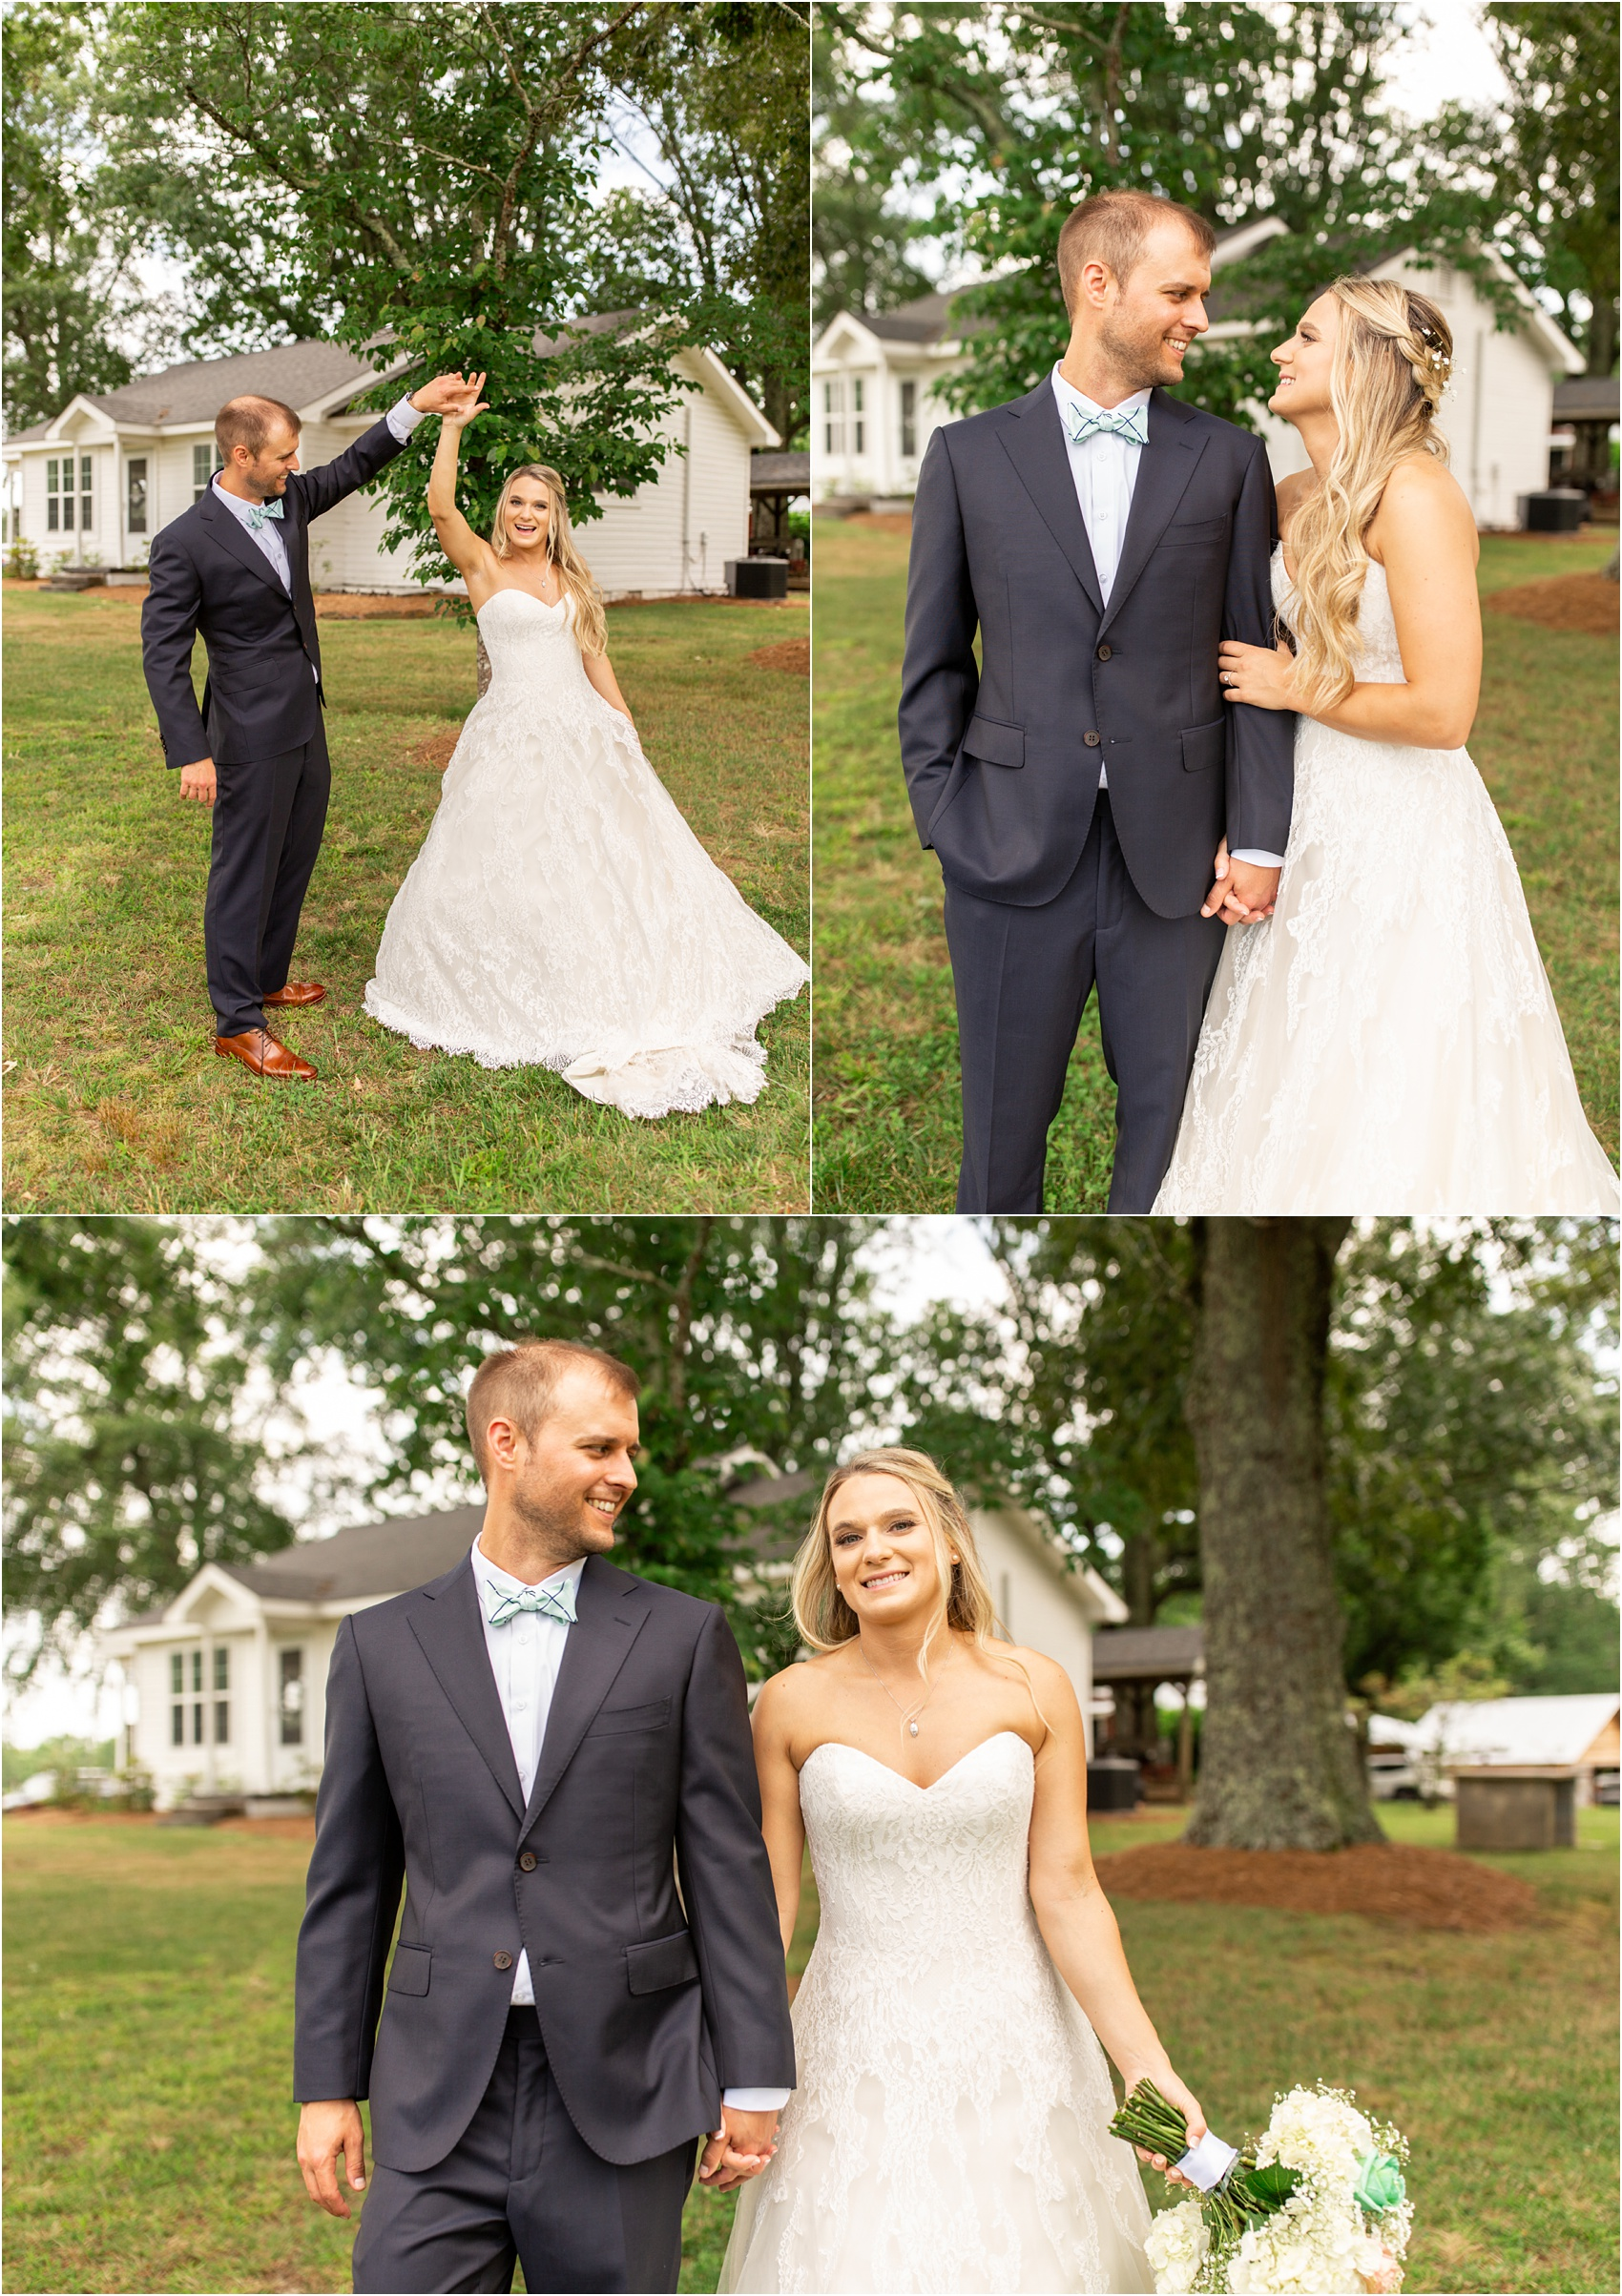 Savannah Eve Photography LLC- Wandolowski-Boyer Wedding-Blog-22.jpg